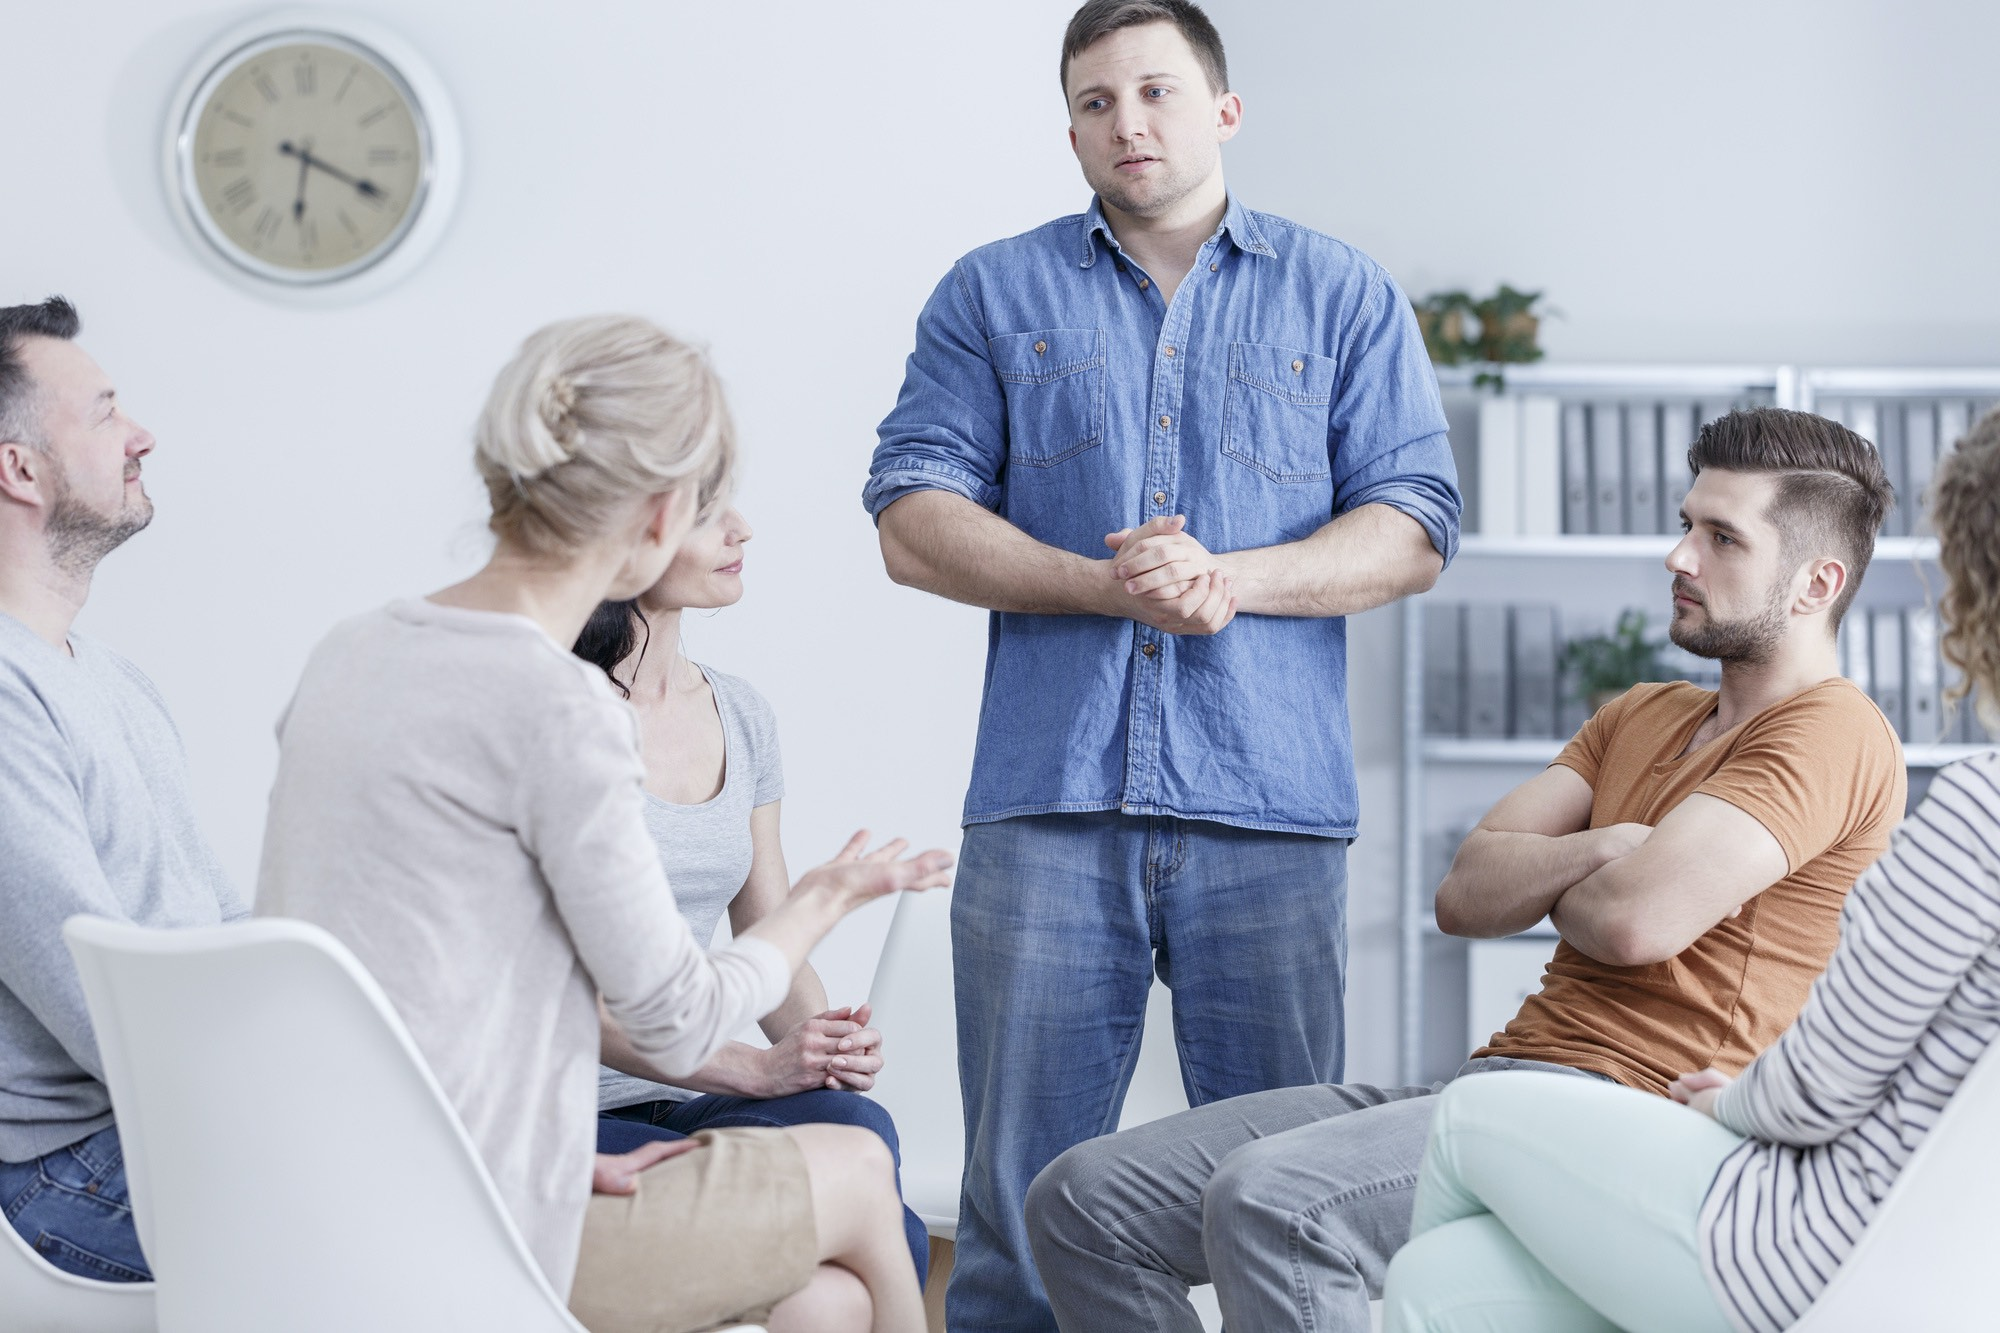 3 Tips for Staging an Intervention for Your Loved One's Drug Addiction